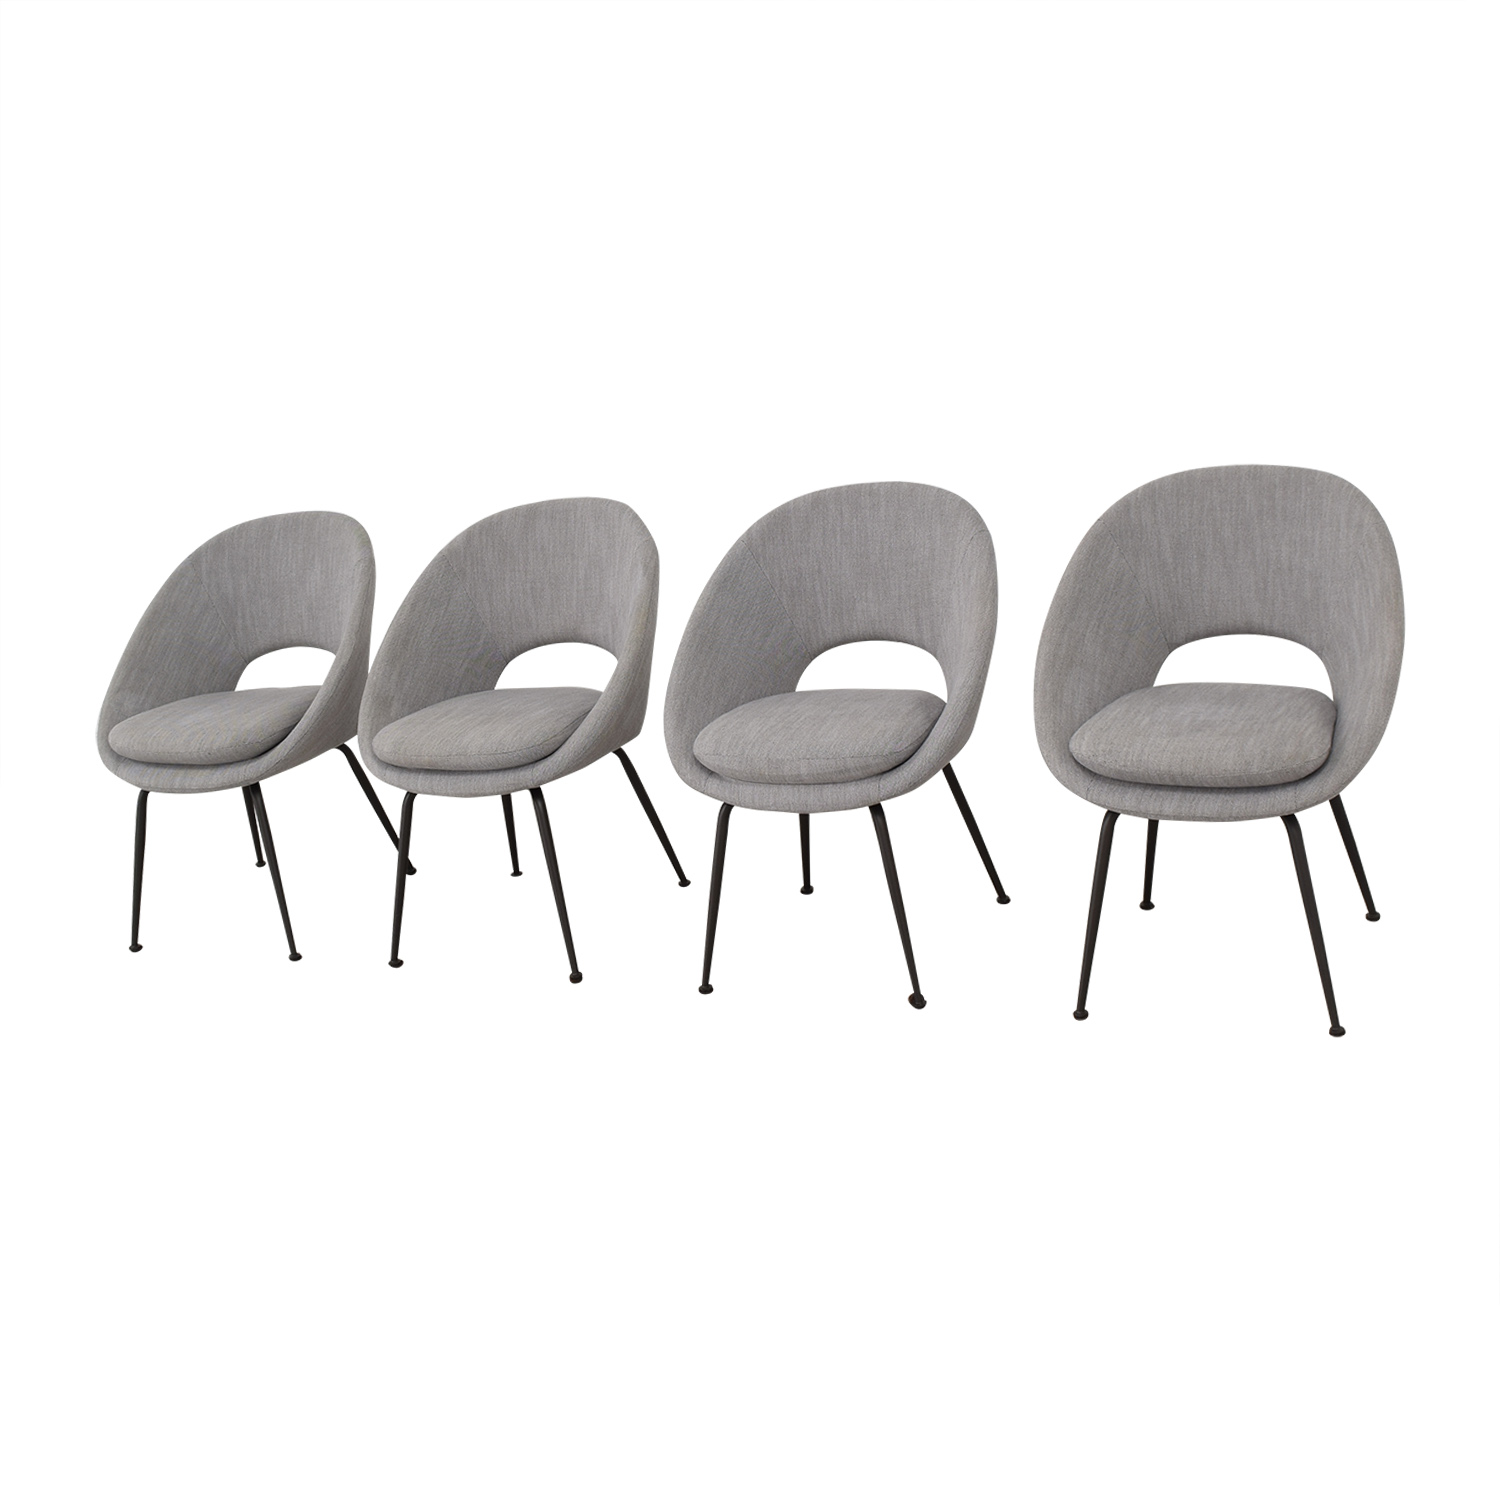 West Elm West Elm Orb Upholstered Dining Chairs pa